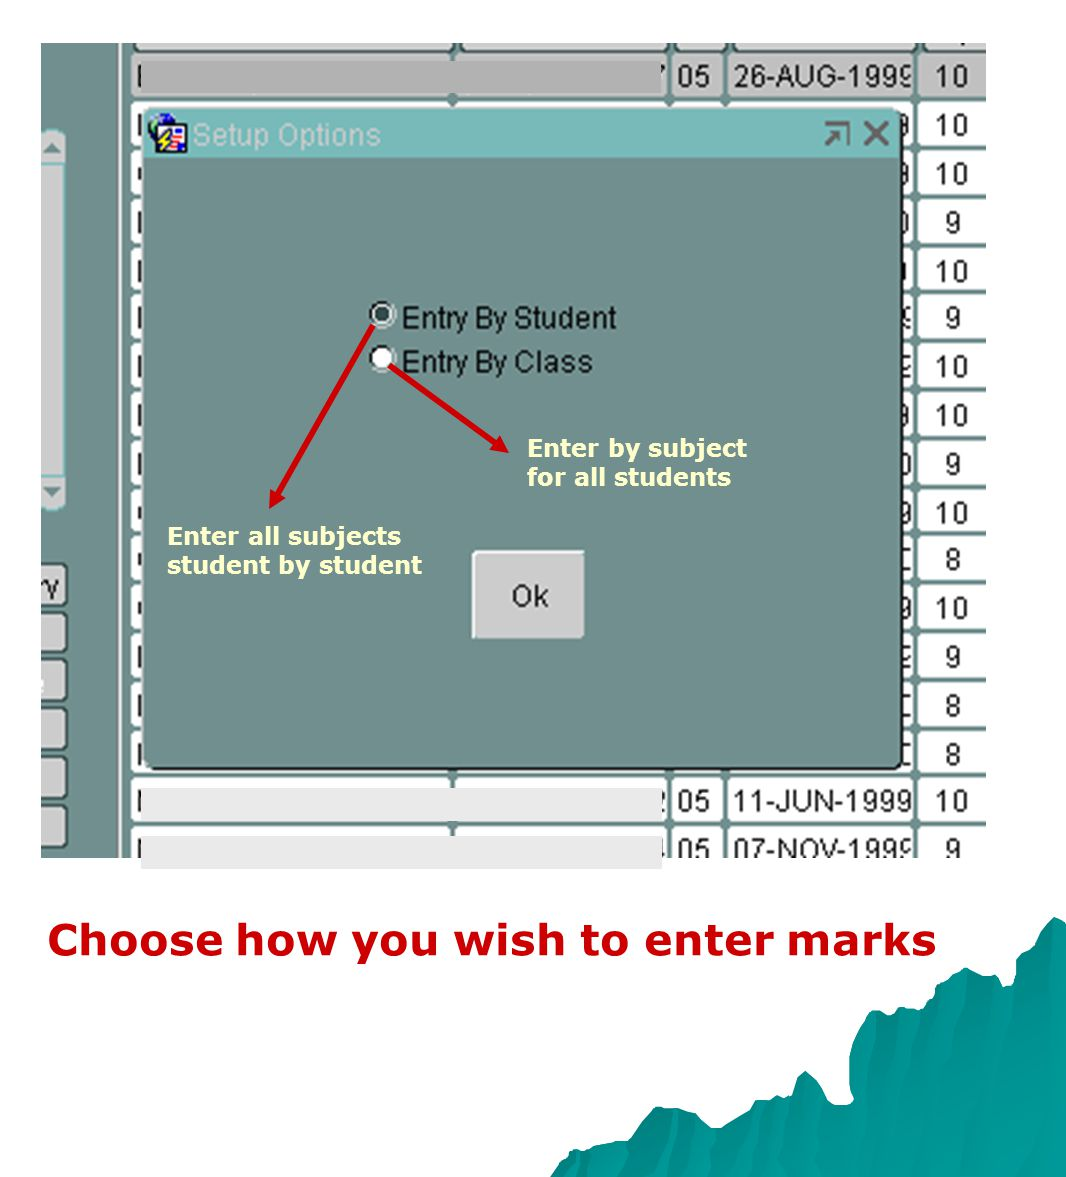 Enter all subjects student by student Enter by subject for all students Choose how you wish to enter marks